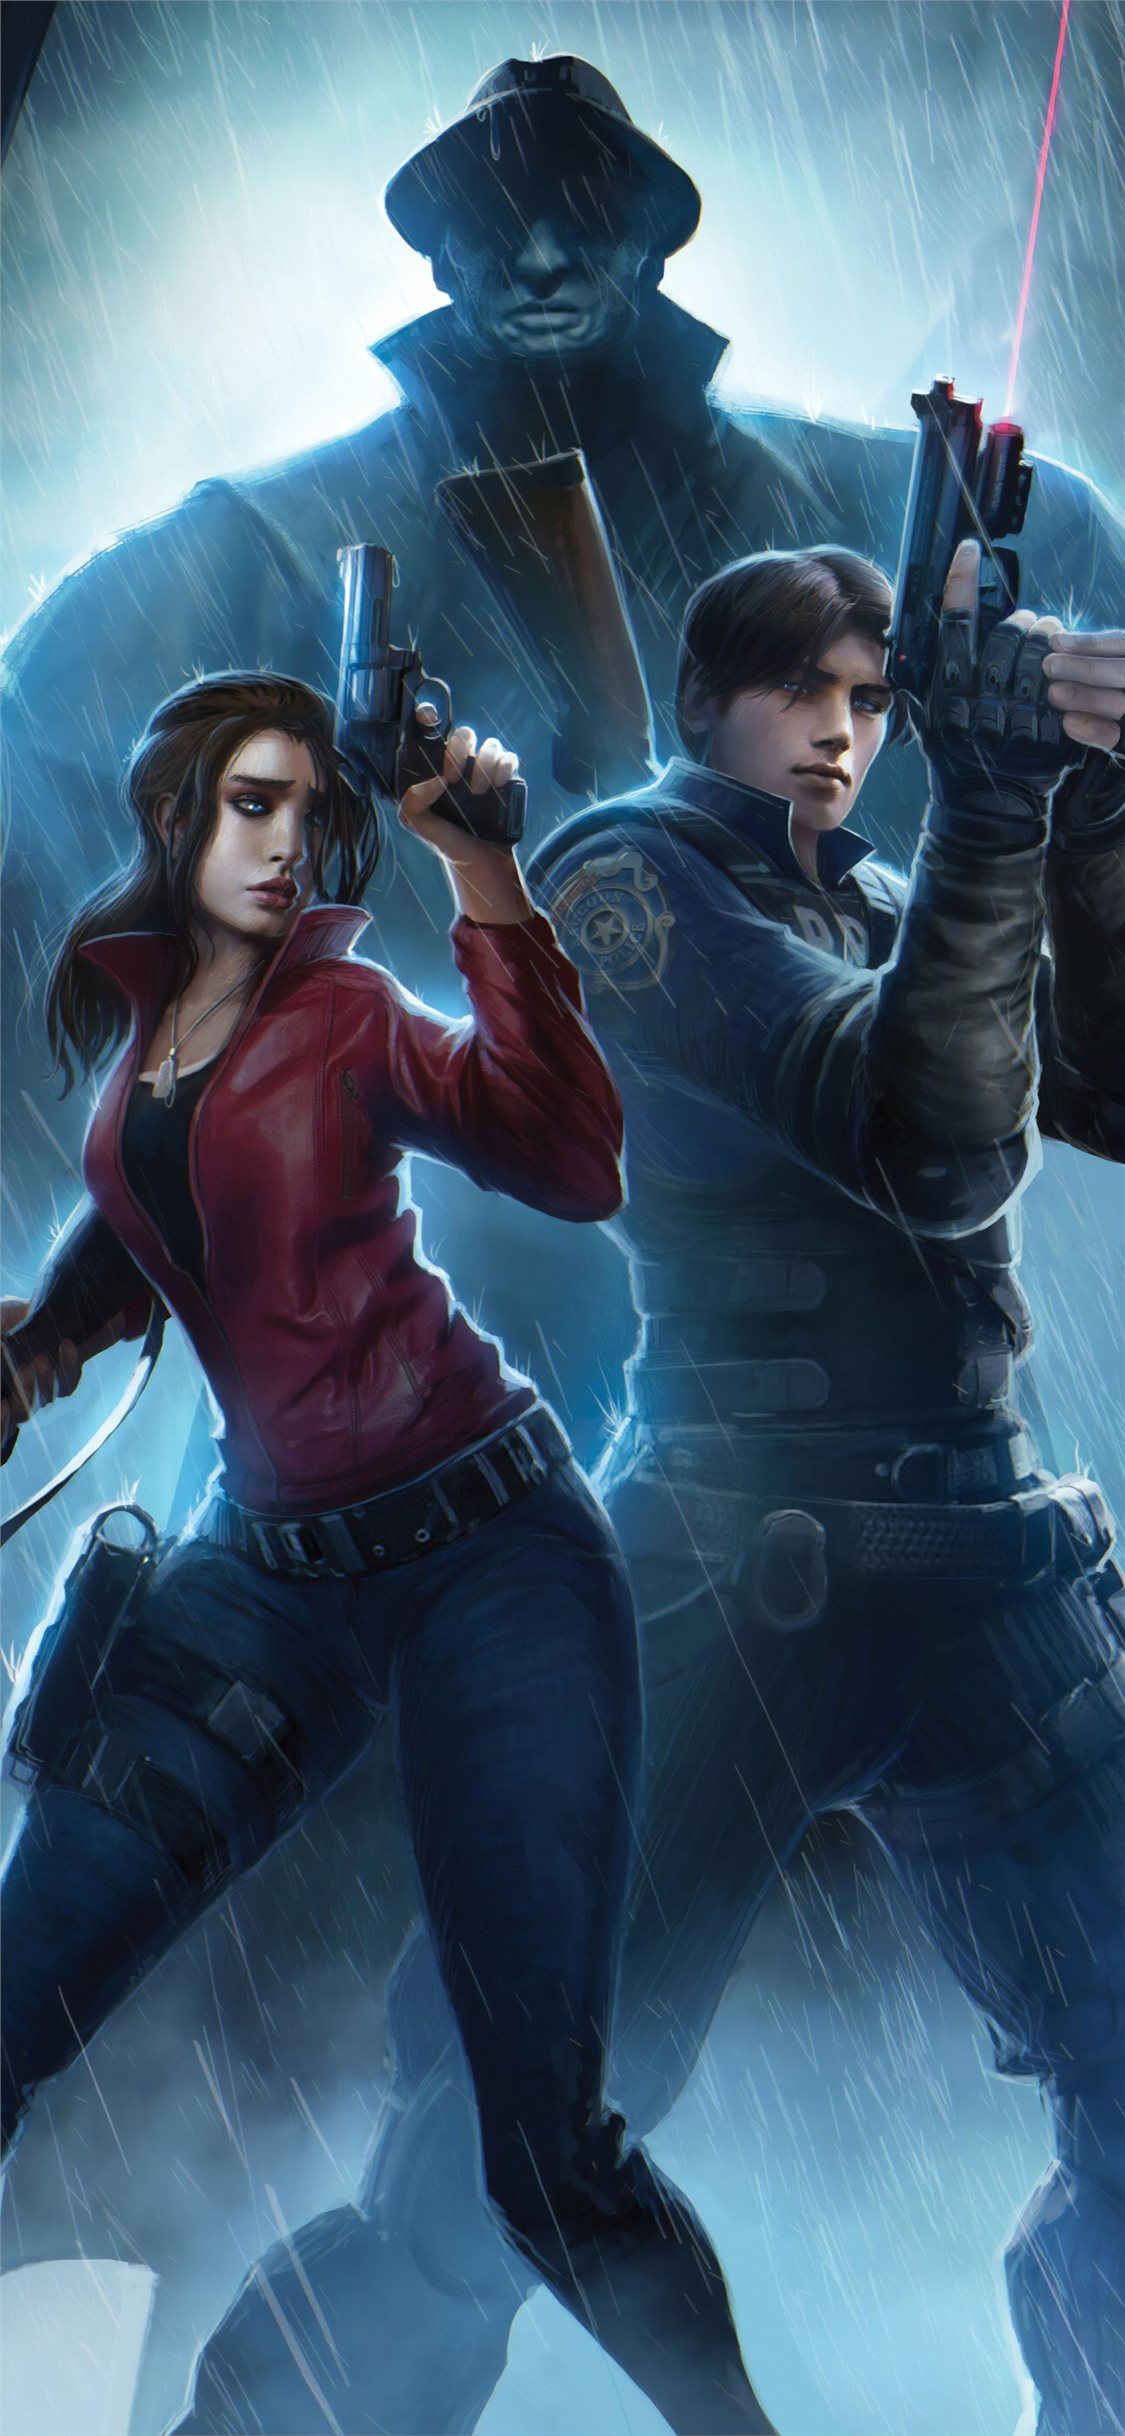 Resident Evil Claire Redfield Chris Redfield 4k Ar Iphone